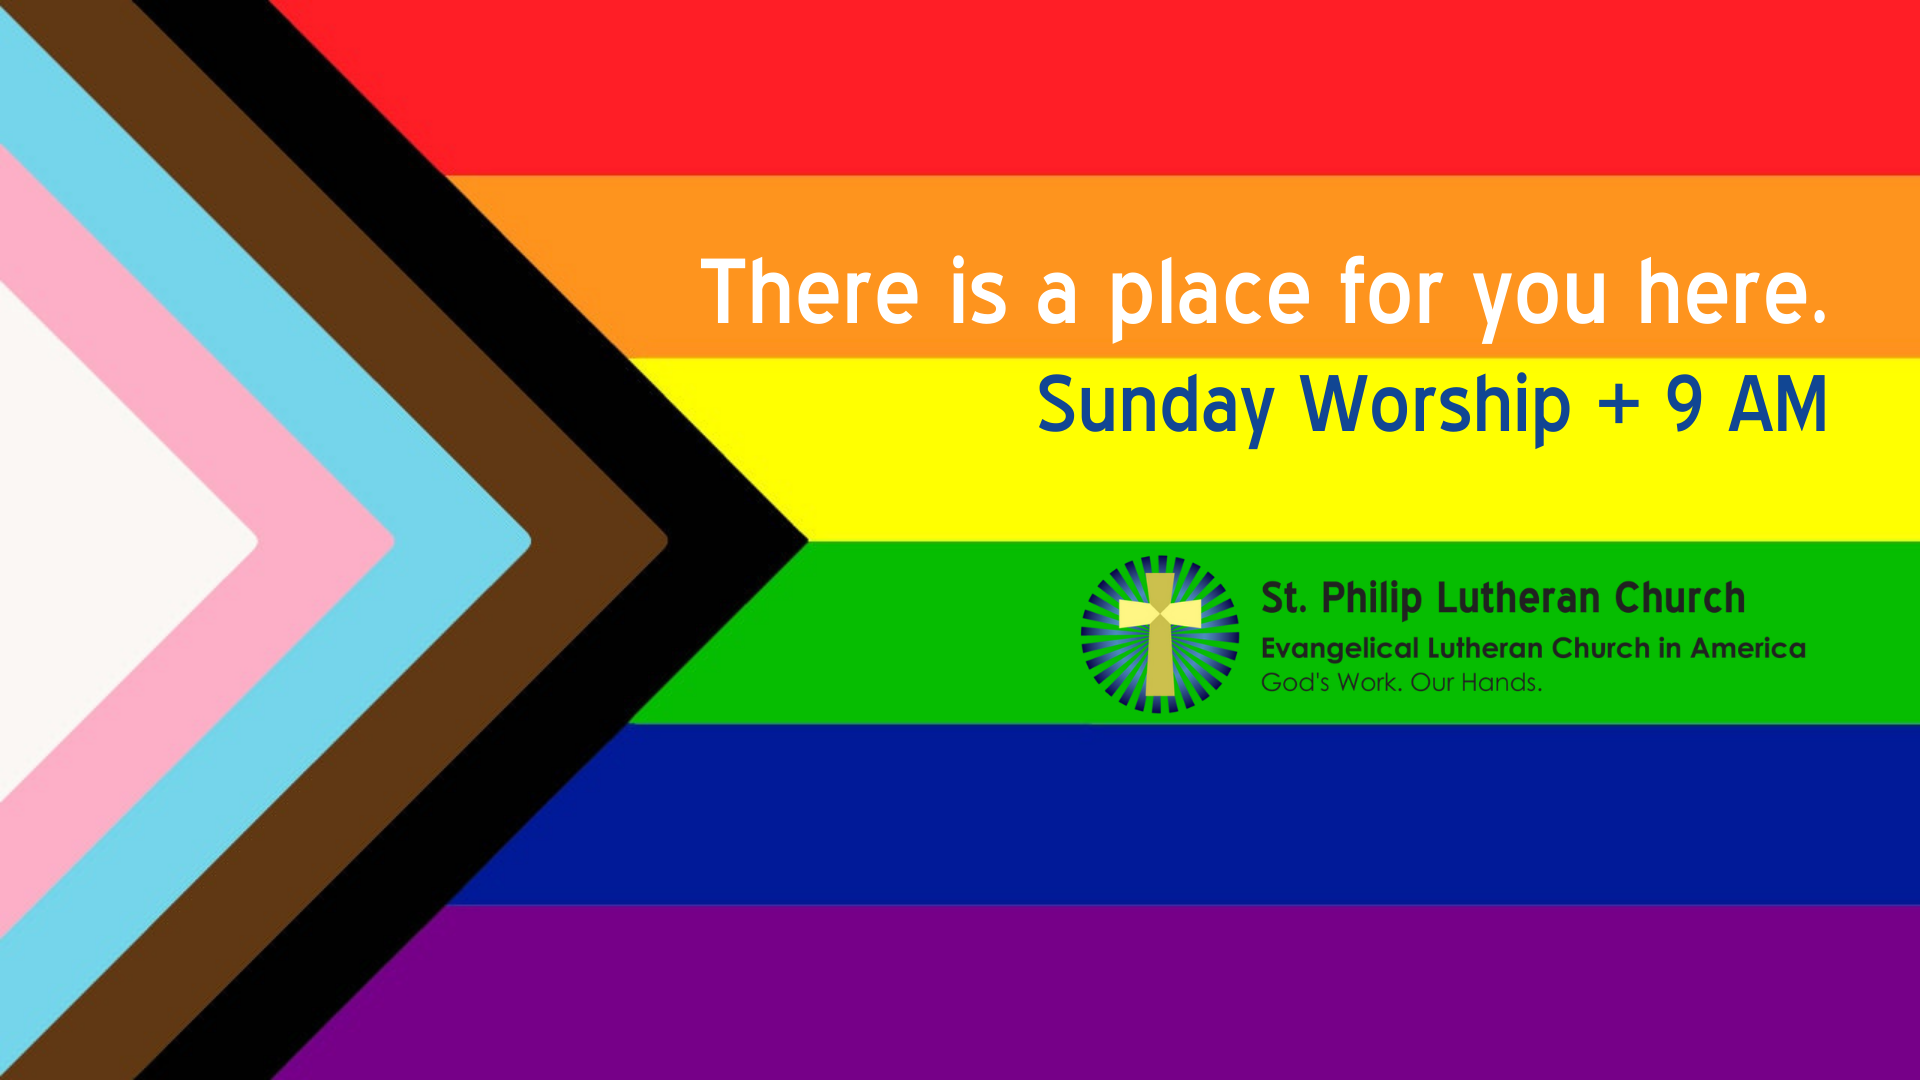 There is a place for you here - St. Philip Lutheran Church